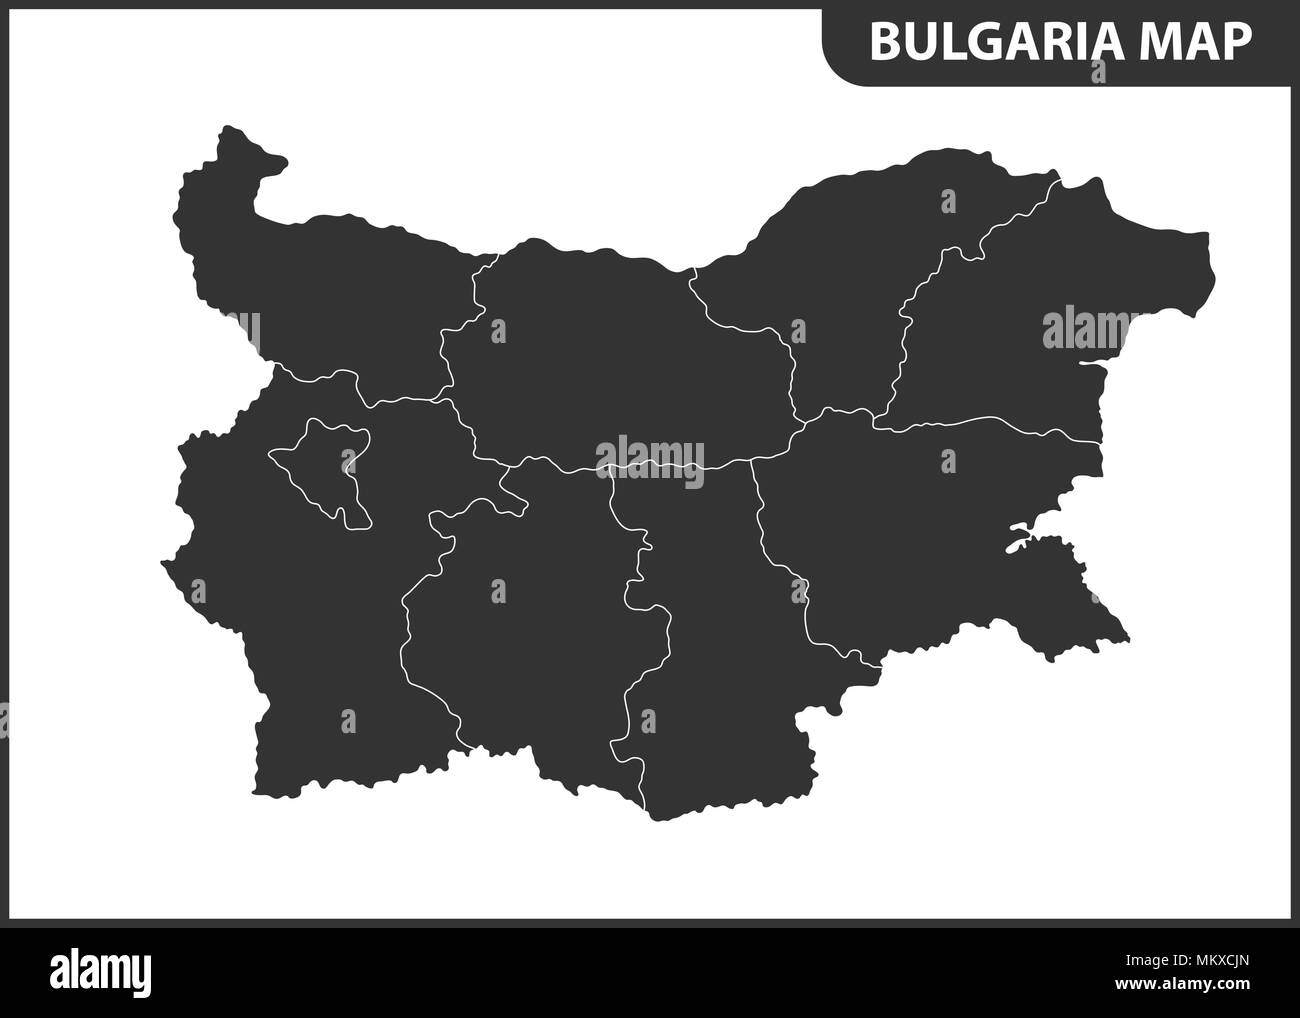 The detailed map of Bulgaria with regions or states ... on detailed map of ussr, detailed map of bosnia and herzegovina, detailed map of dalmatian coast, detailed map of scottish islands, detailed map of brunei, detailed map of arabia, detailed map of united arab emirates, detailed map romania, detailed map of sub saharan africa, detailed map of marshall islands, detailed map of congo, detailed map of the carribean, detailed map of holland netherlands, detailed map of american continent, detailed map of central african republic, detailed map of the dominican republic, detailed map of usa east coast, detailed map of countries, detailed map of indian ocean, detailed map of west bank,